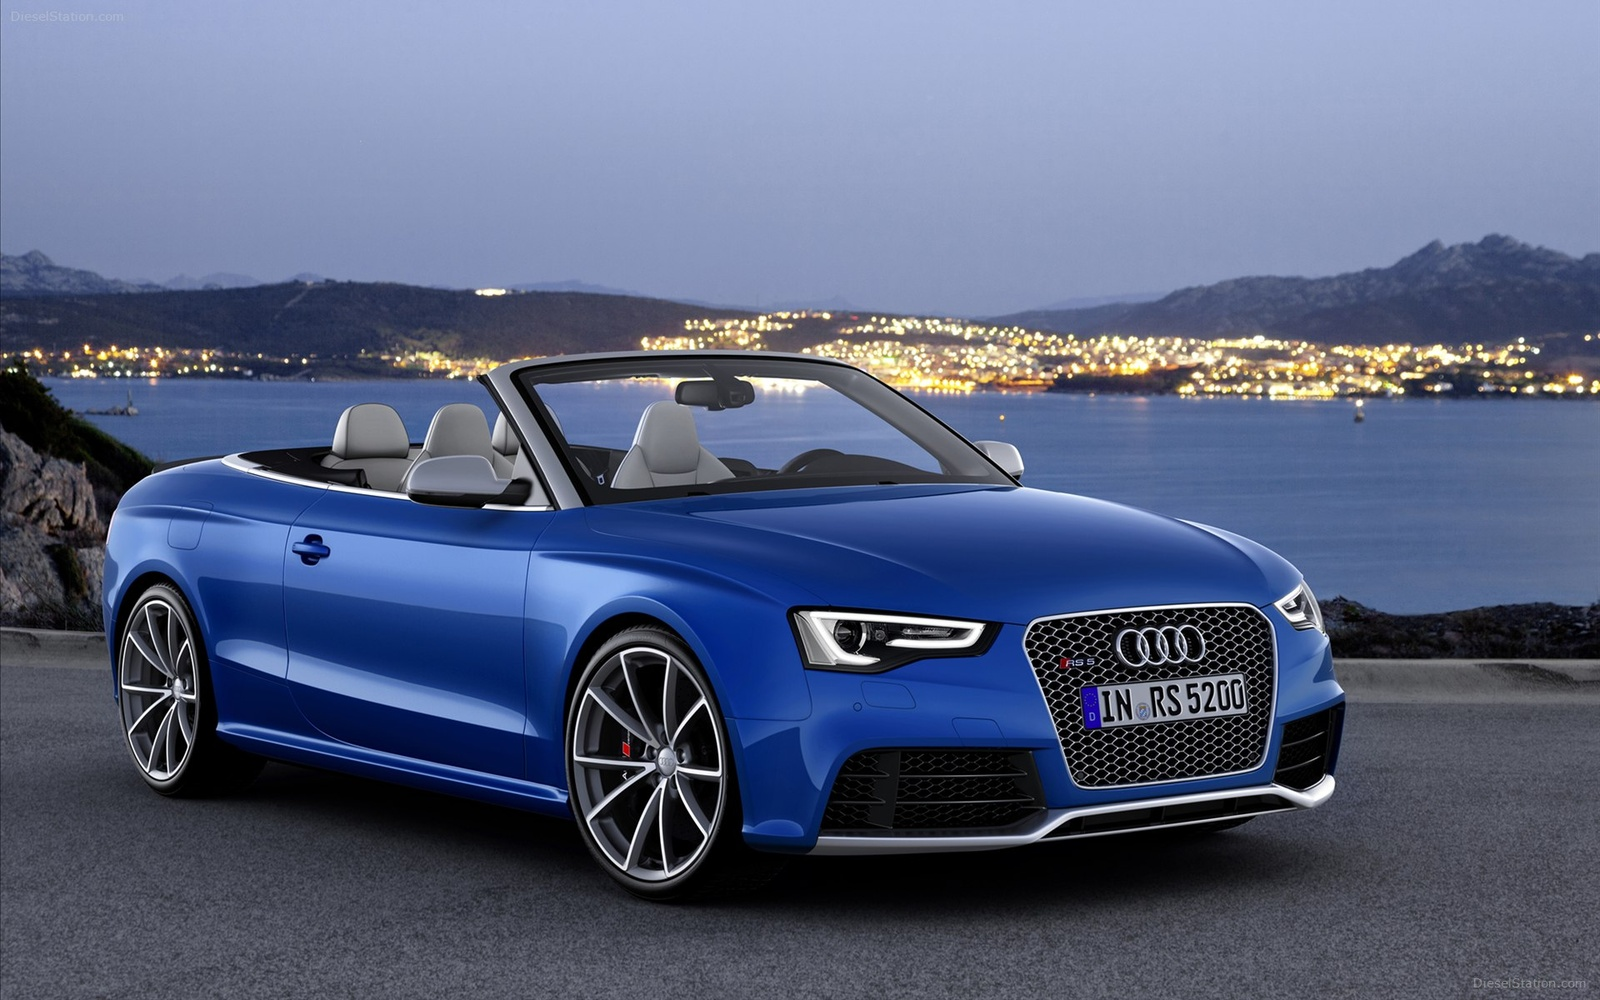 Audi S4 Questions Audi Recommends Using 91 Octane Gas But Requires